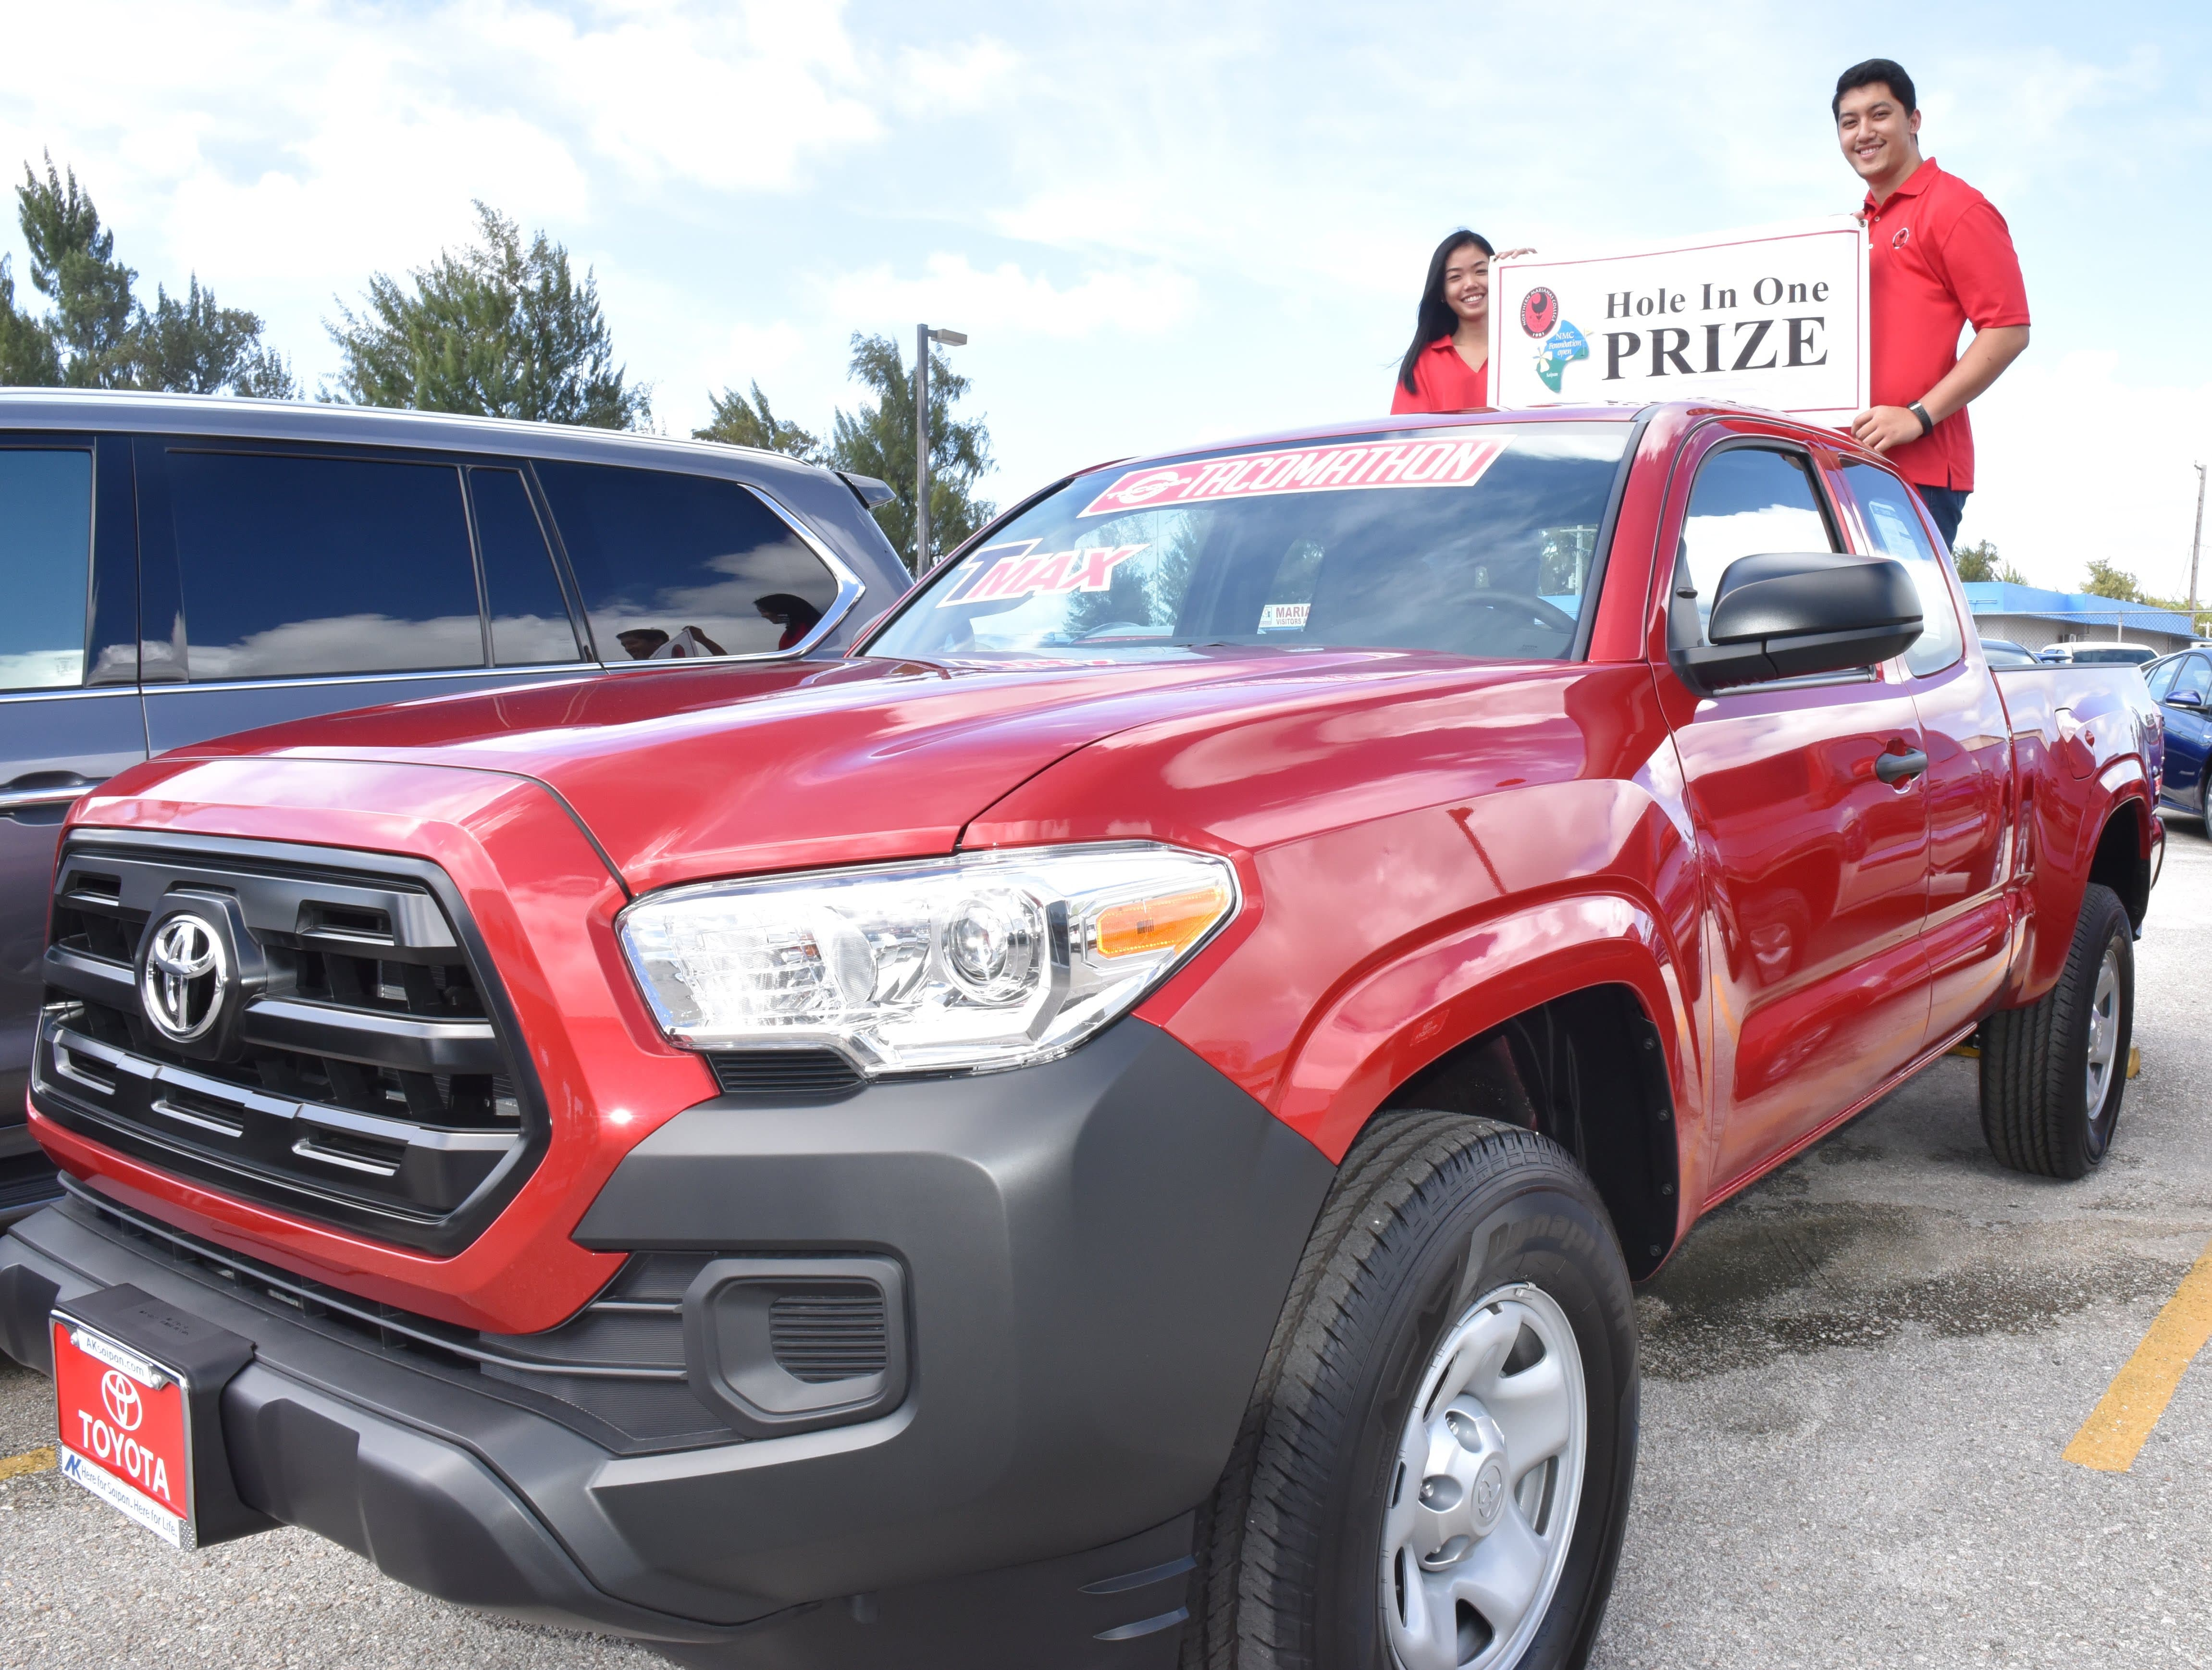 Atkins Kroll is offering a 2017 Toyota Tacoma that will be featured at the upcoming annual NMC Foundation Golf Tournament on Saturday, March 3, 2018. In the photo are Atkins Kroll employees and NMC staff and students, led by NMC President Dr. Carmen Fernandez (3rd from right).